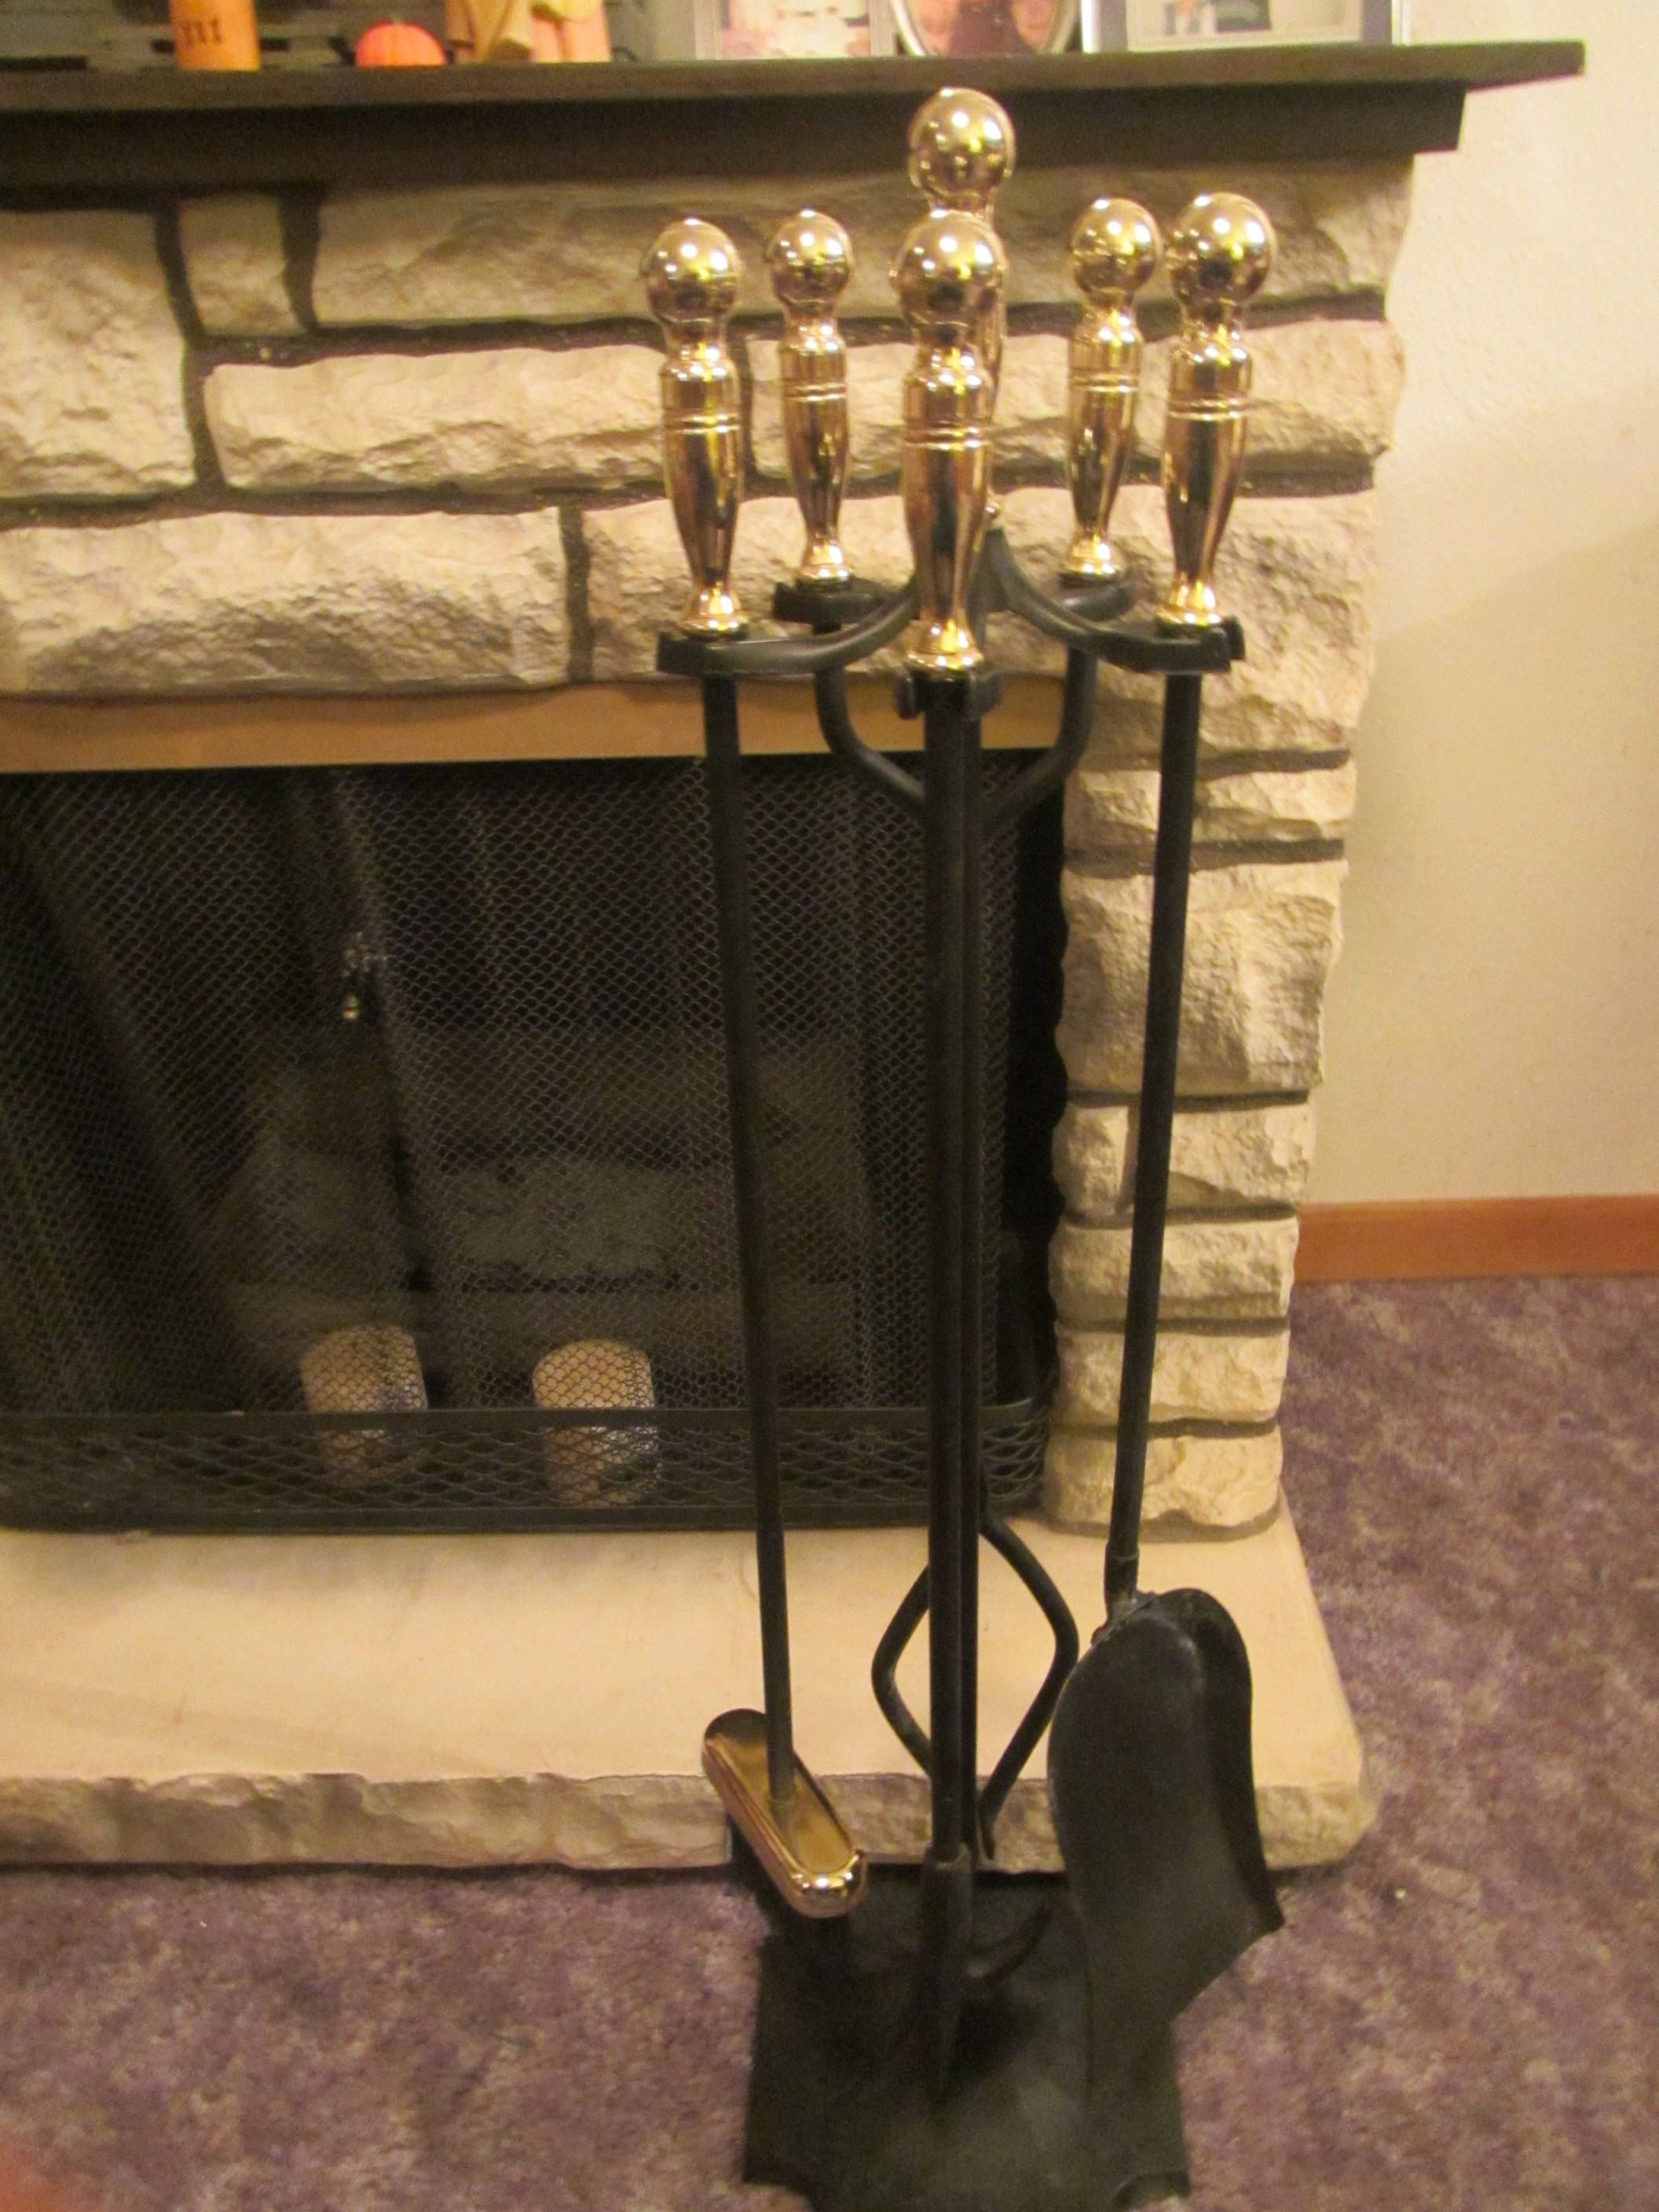 Fireplace Tool Set Brass Handle Shovel Broom Brush Poker And Black Metal Tongs In Stand Fp500 By Maurys Fireplace Tool Set Brass Handles Fireplace Tools